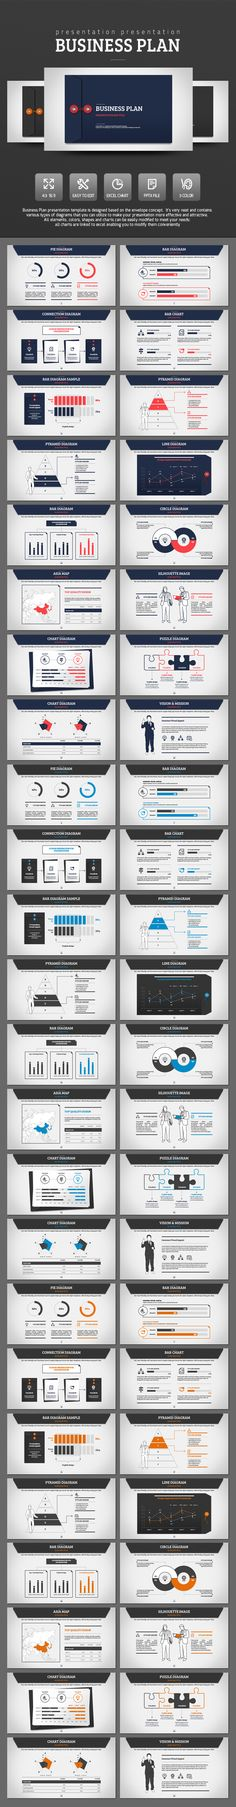 Business Plan PowerPoint Presentation Template #design #slides Download: http://graphicriver.net/item/business-plan/14119538?ref=ksioks